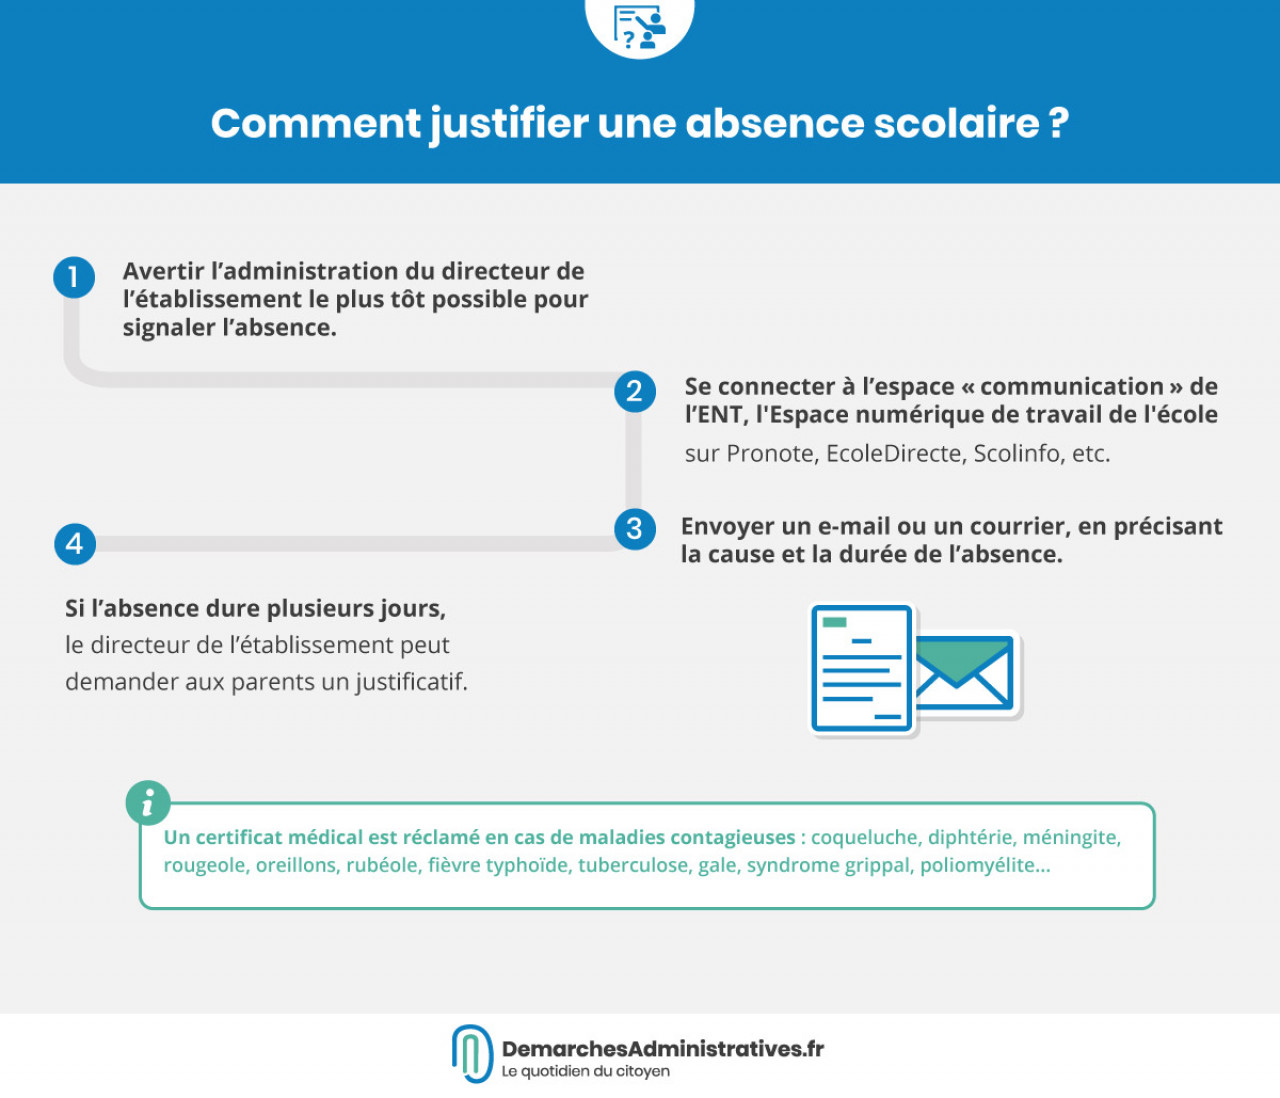 Justifier Une Absence Scolaire